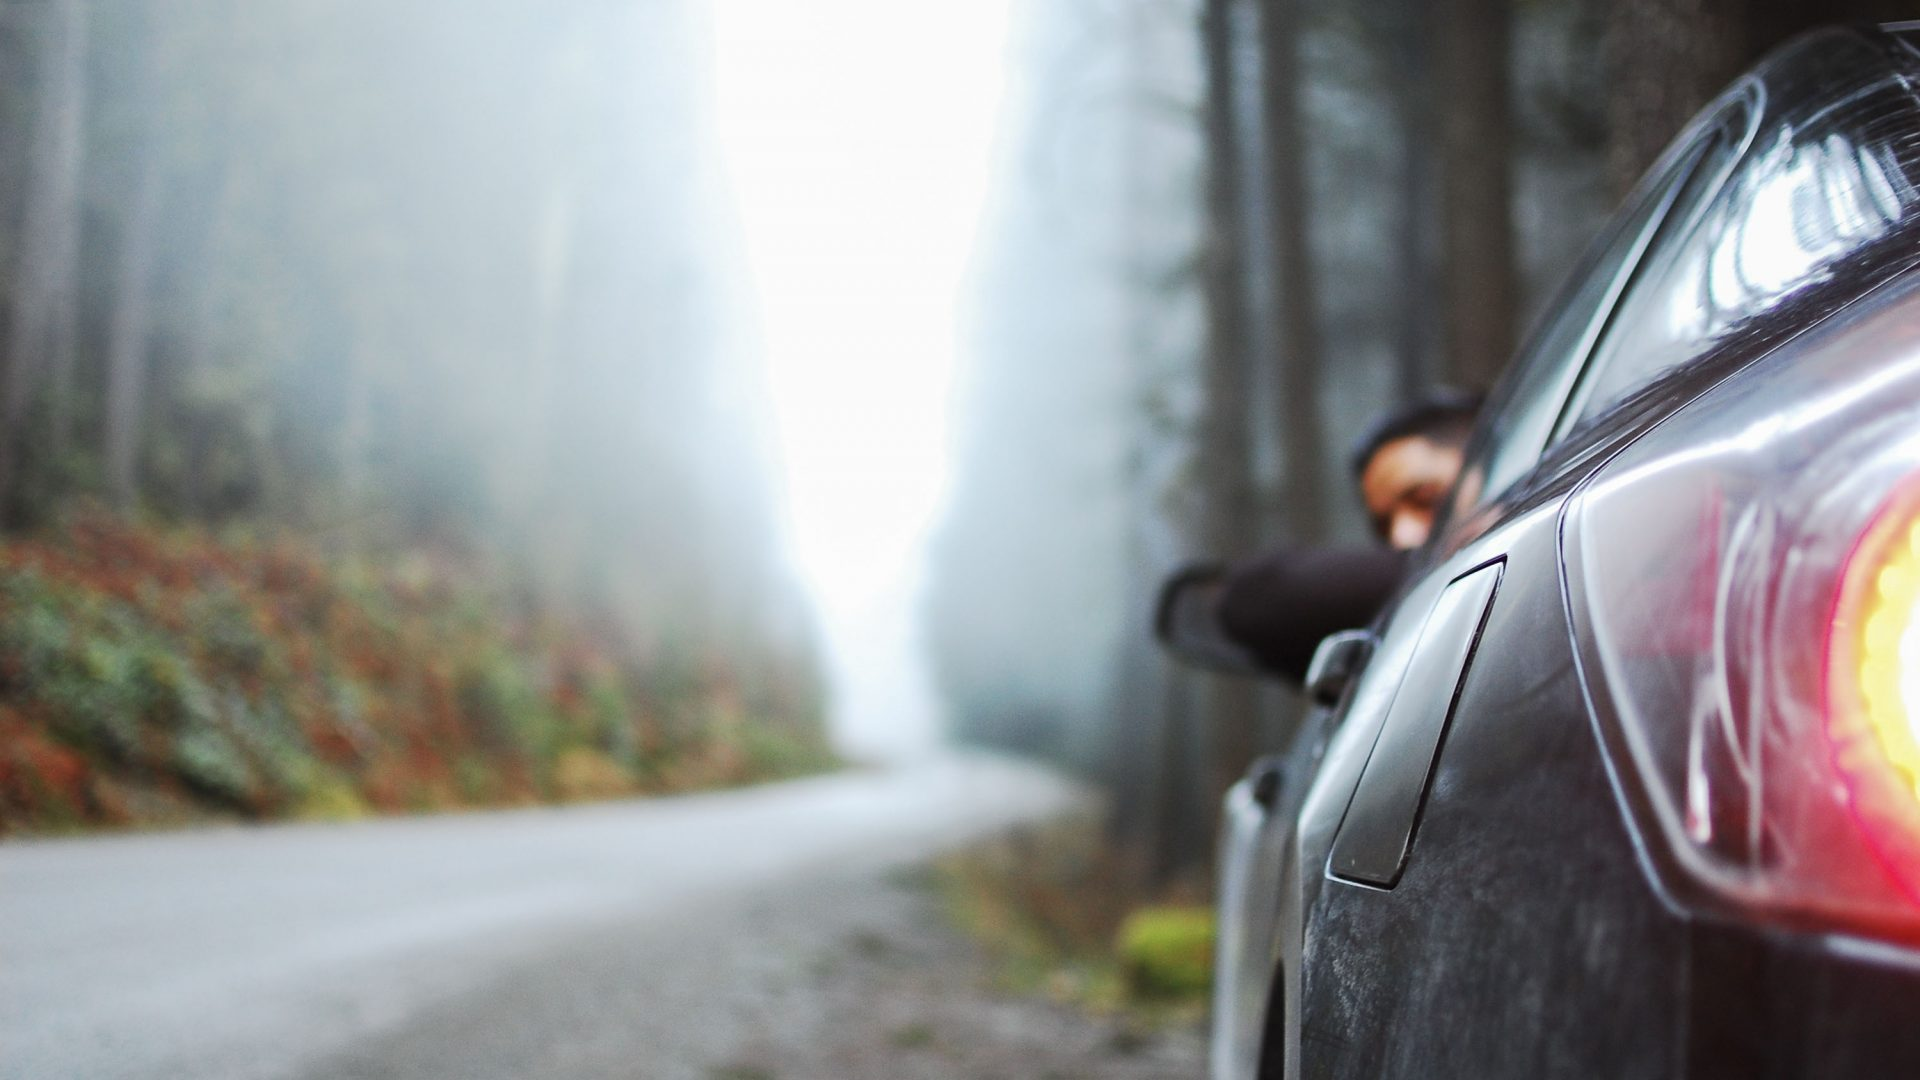 Don't go hitchhiking in Canada without reading this first